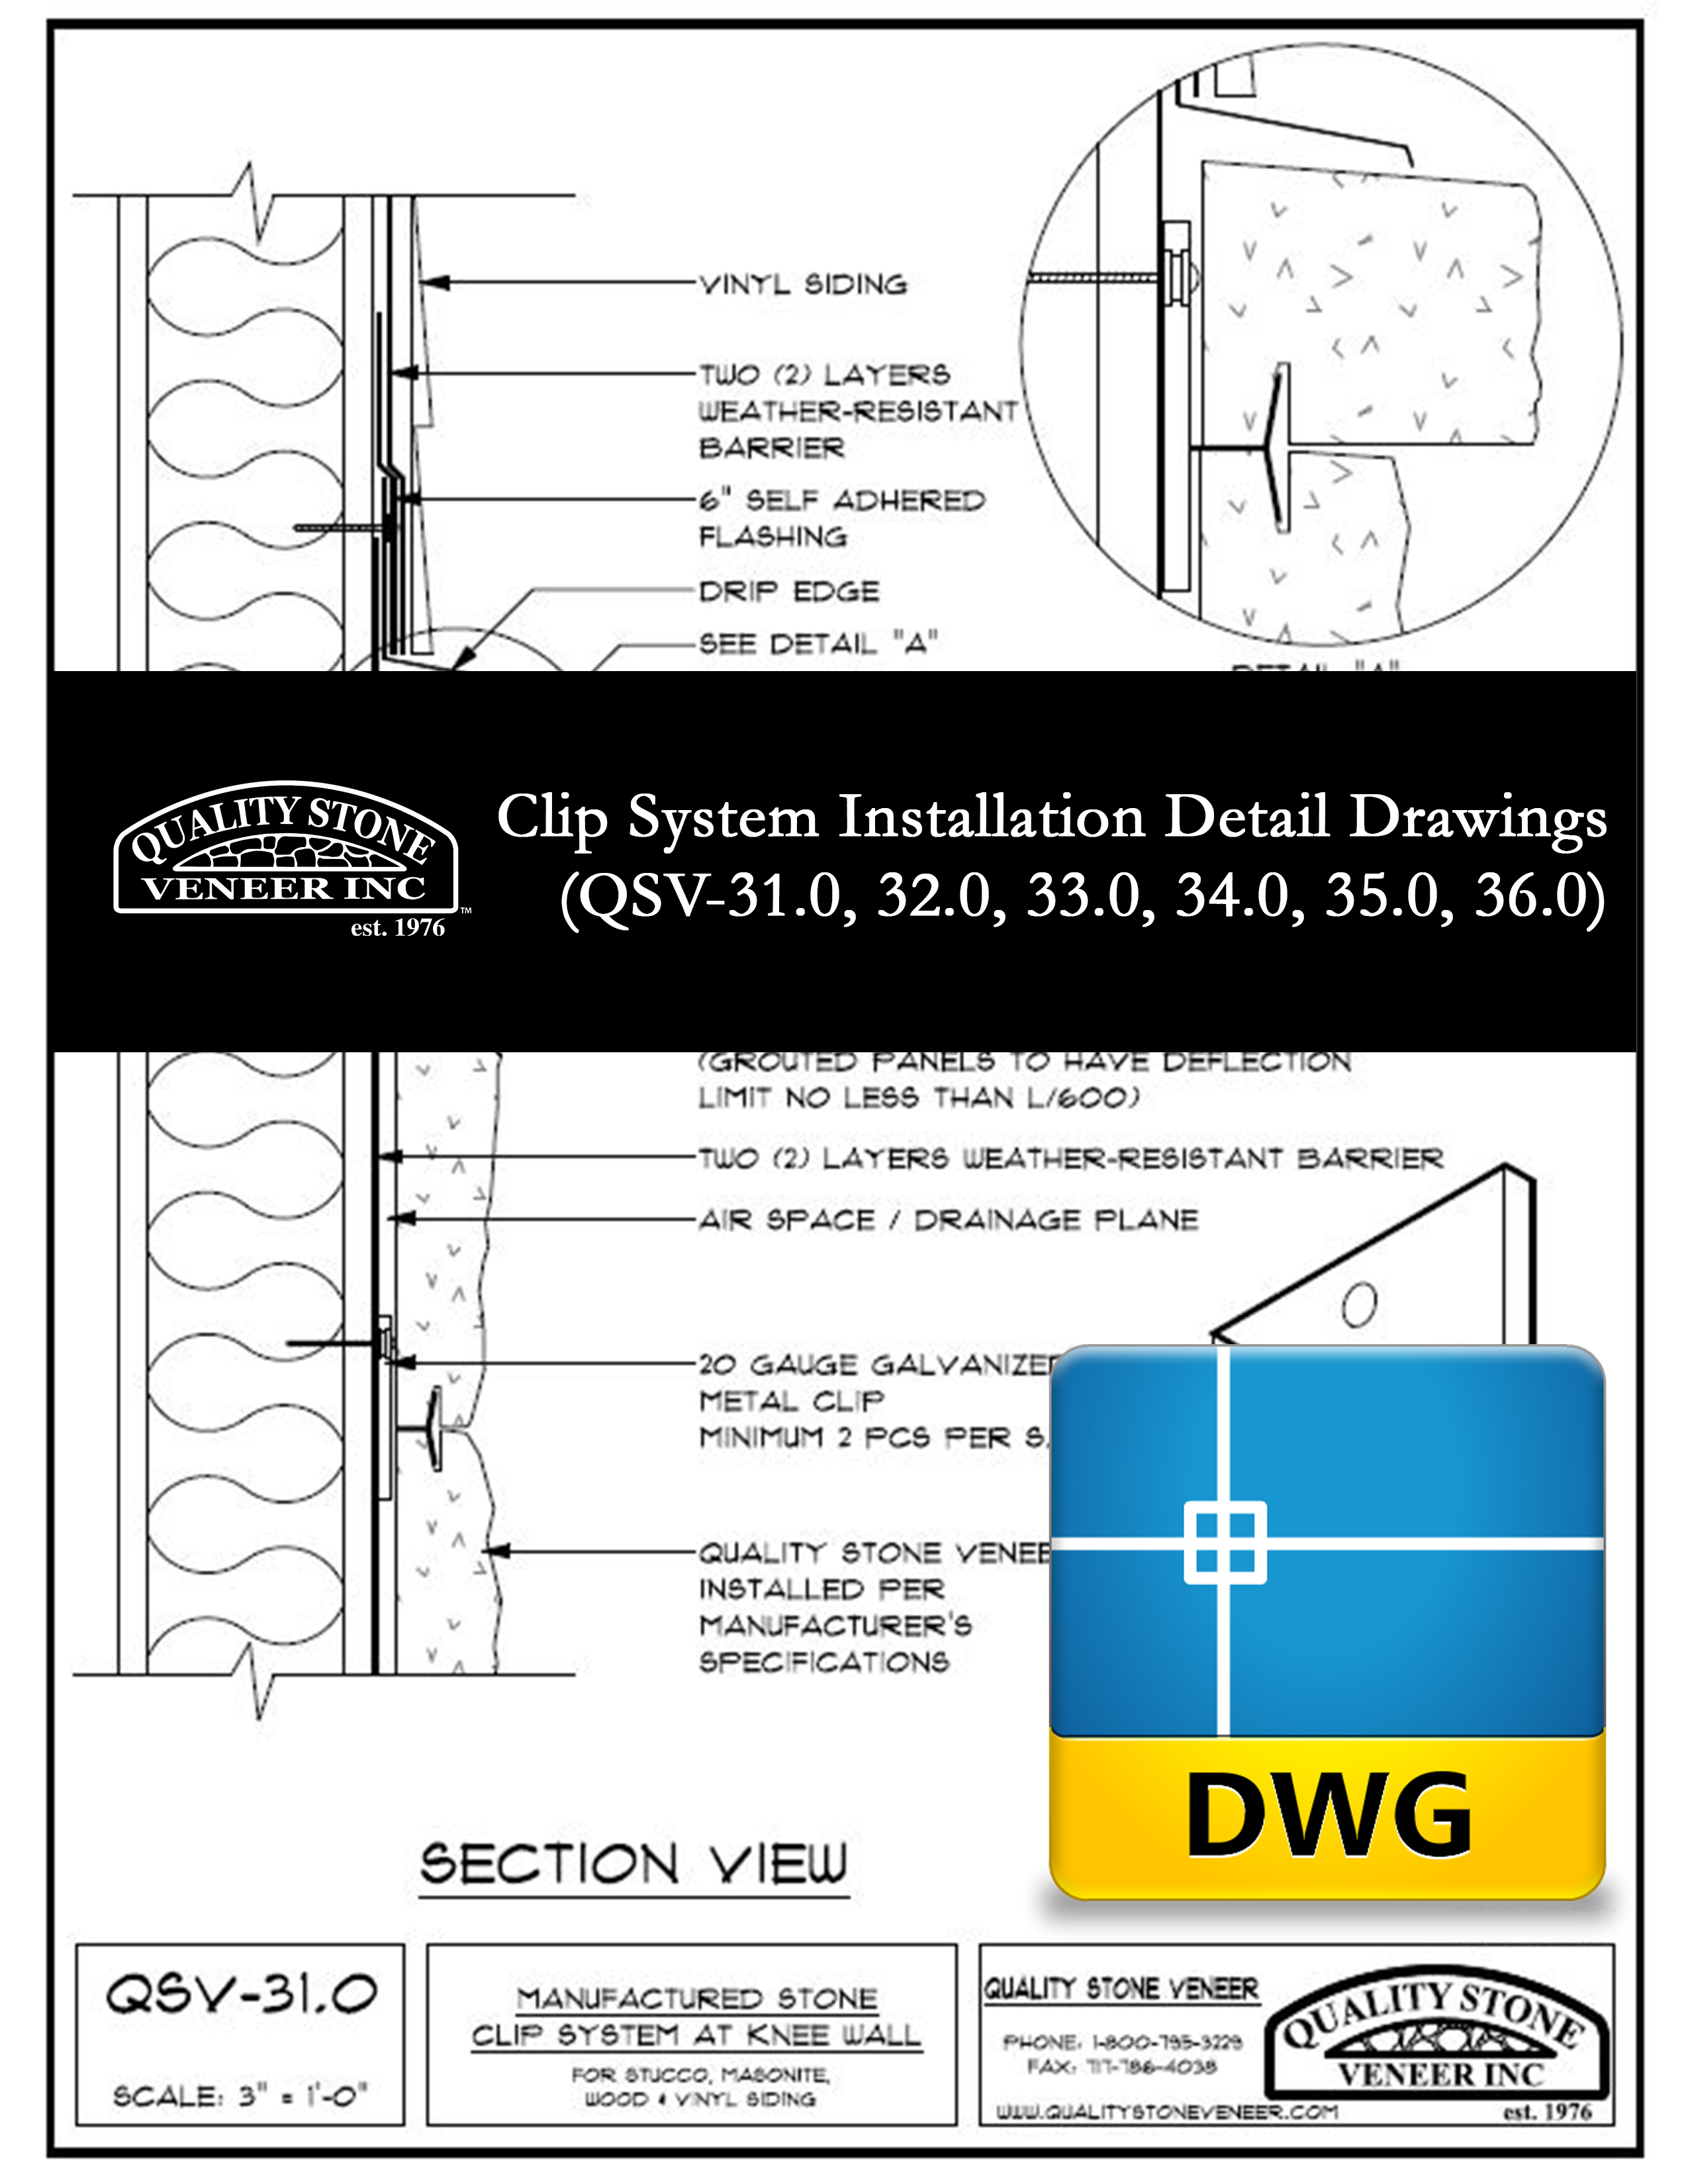 DWG File - CLIP Installation Drawings 31 - 36